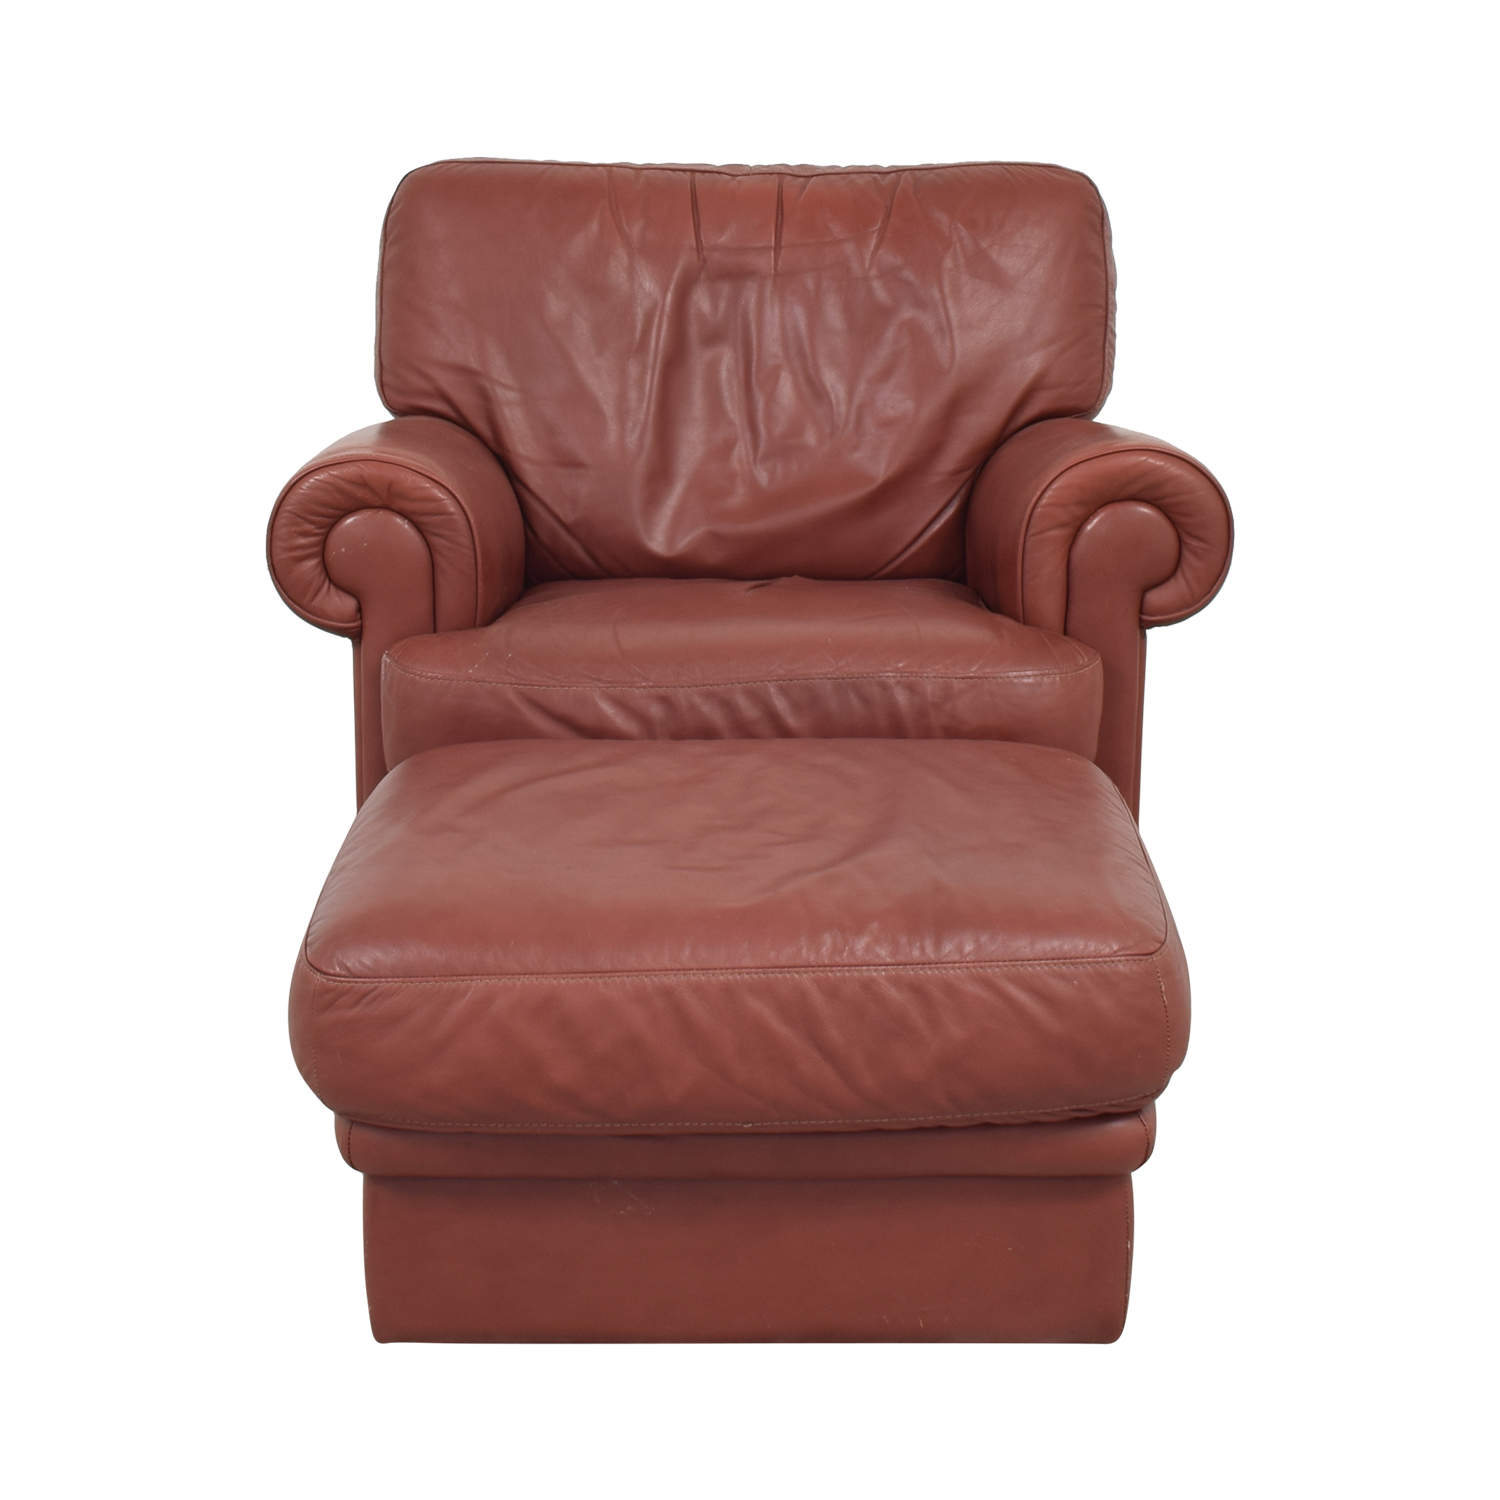 Italian Club Chair with Ottoman on sale